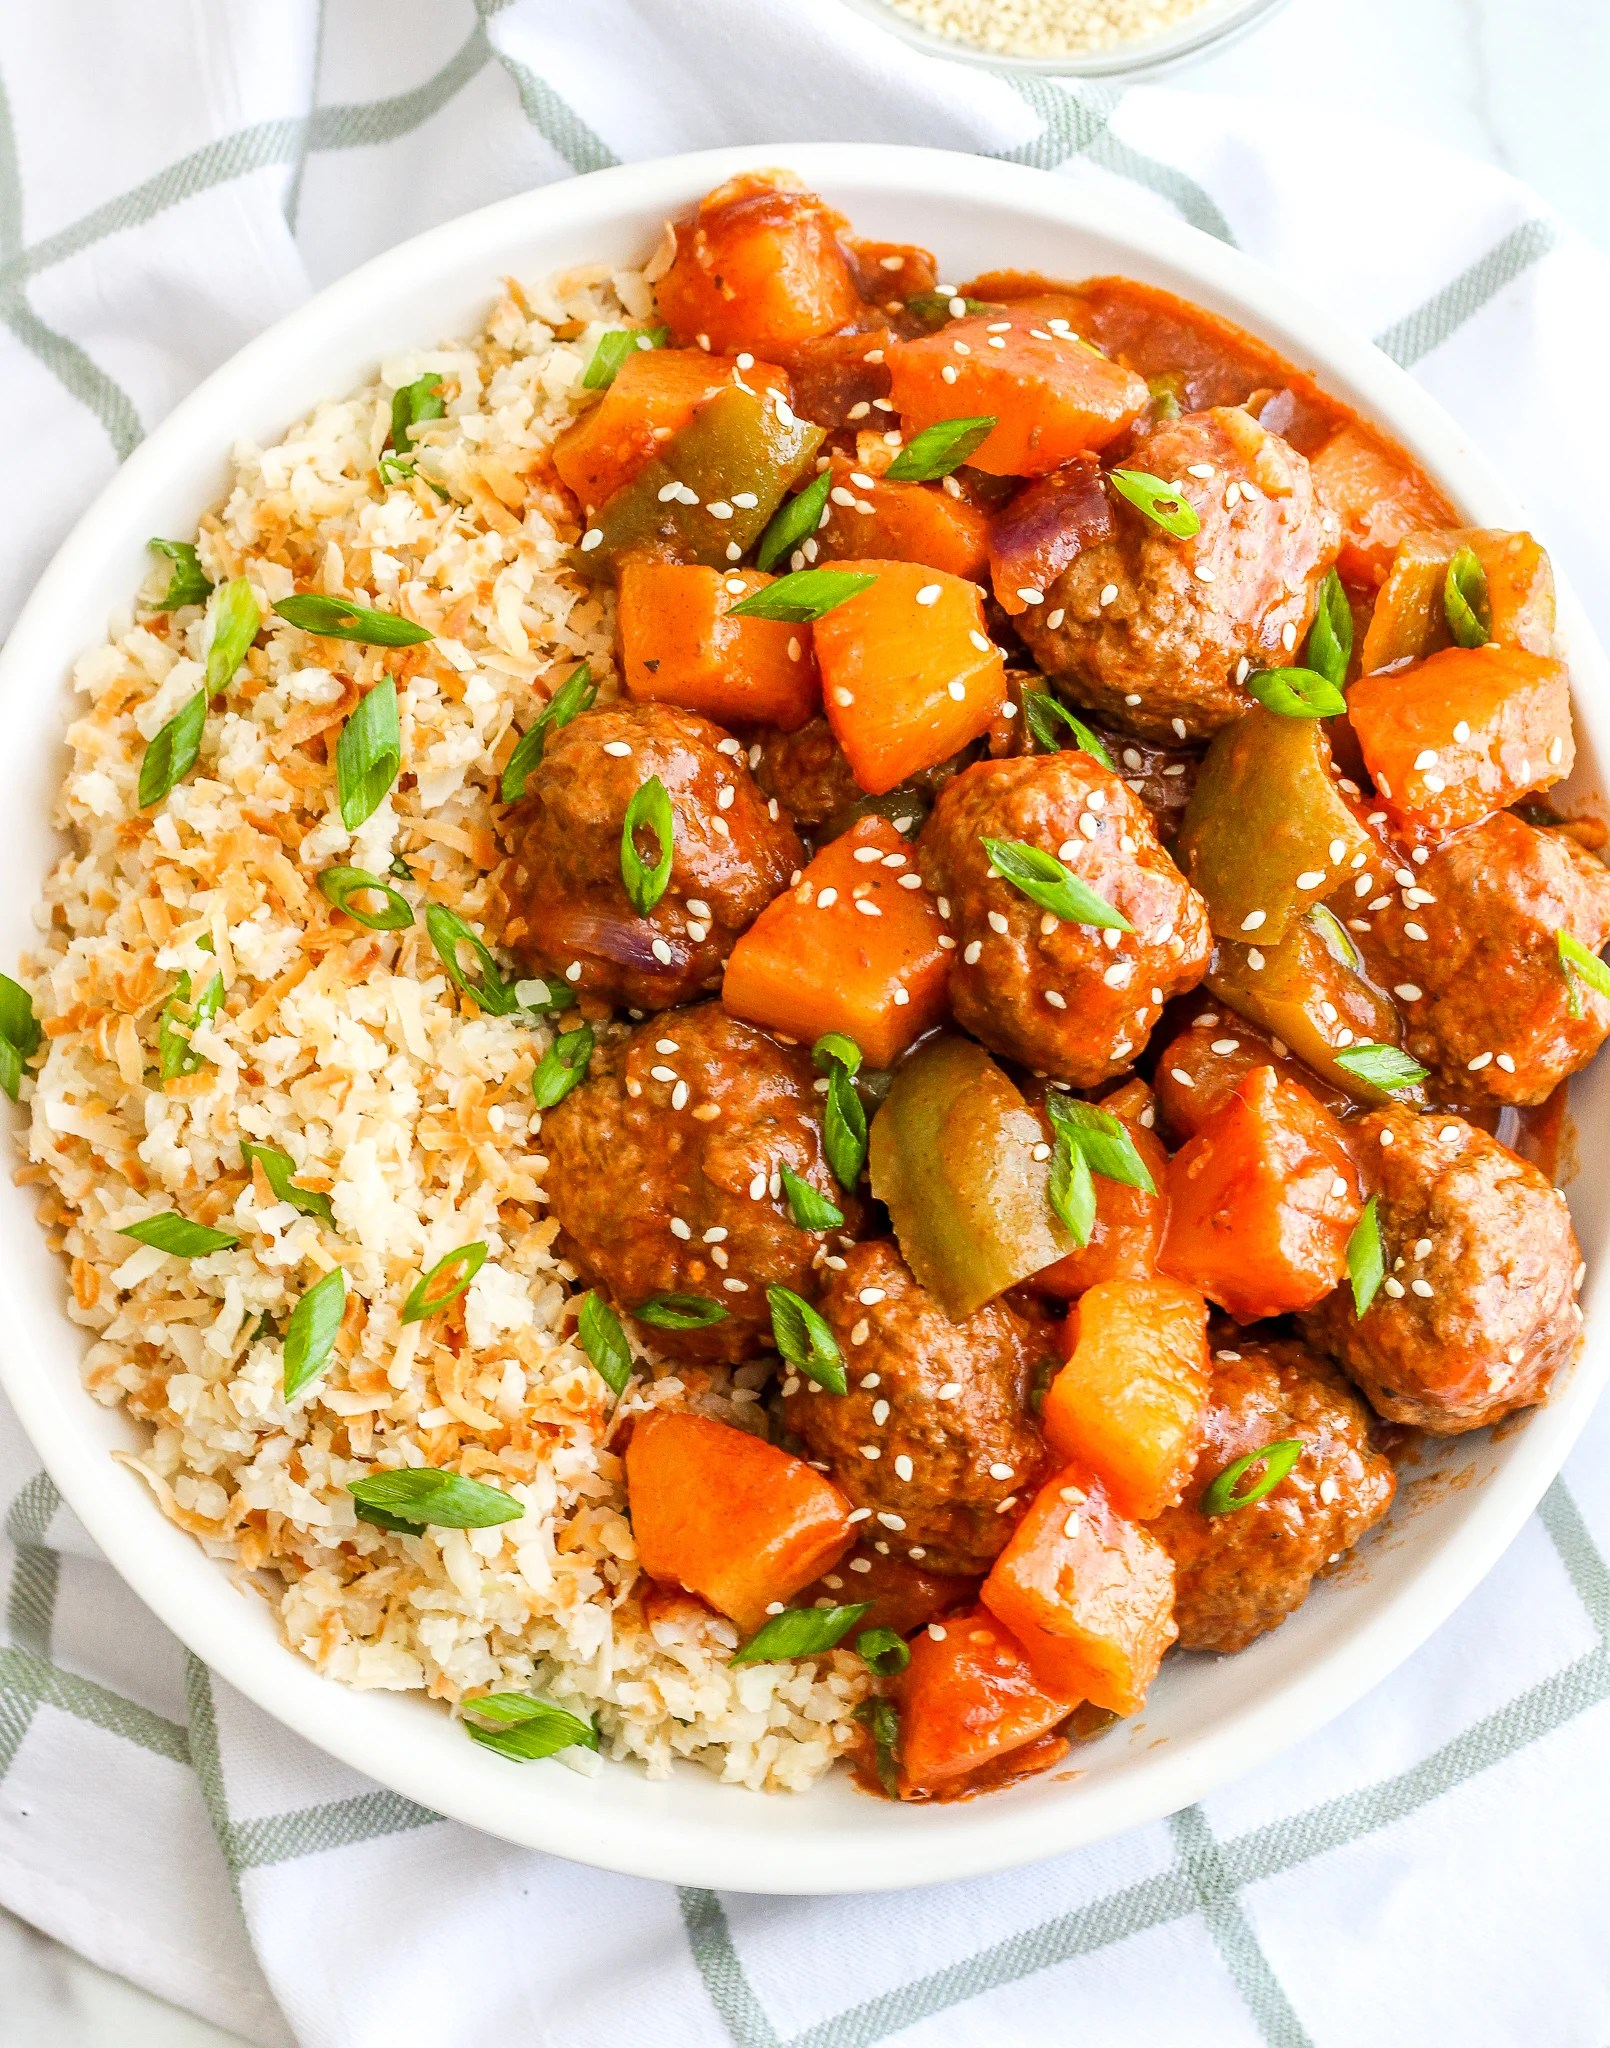 Sweet & Sour Meatballs with Coconut Cauliflower Rice in a white serving bowl, topped with green onions and sesame seeds